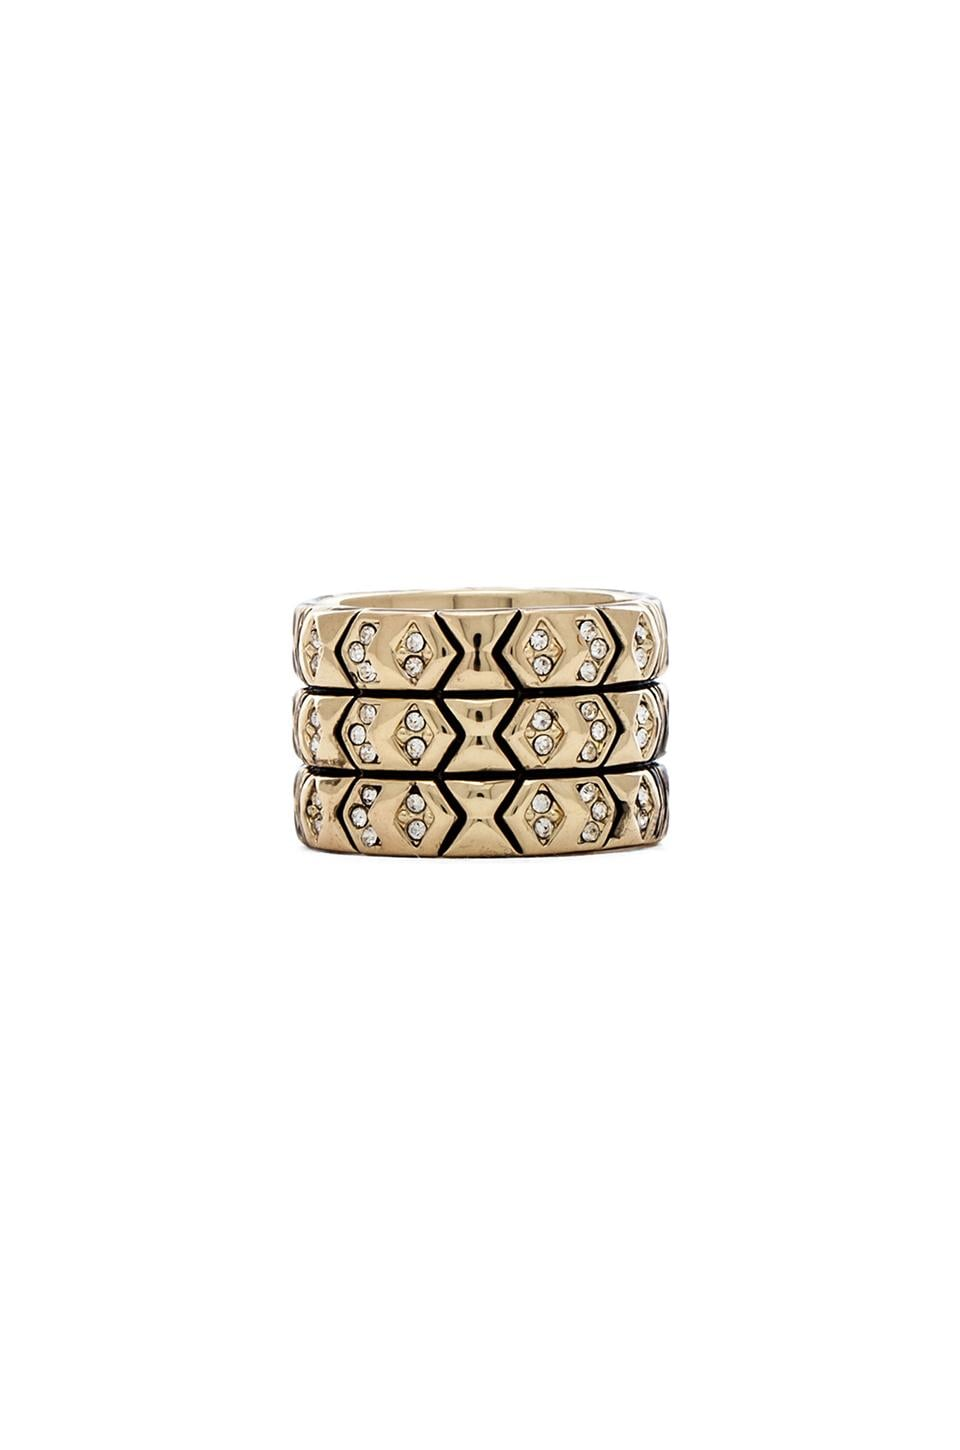 House of Harlow 1960 House of Harlow Echo Crest Ring in Gold